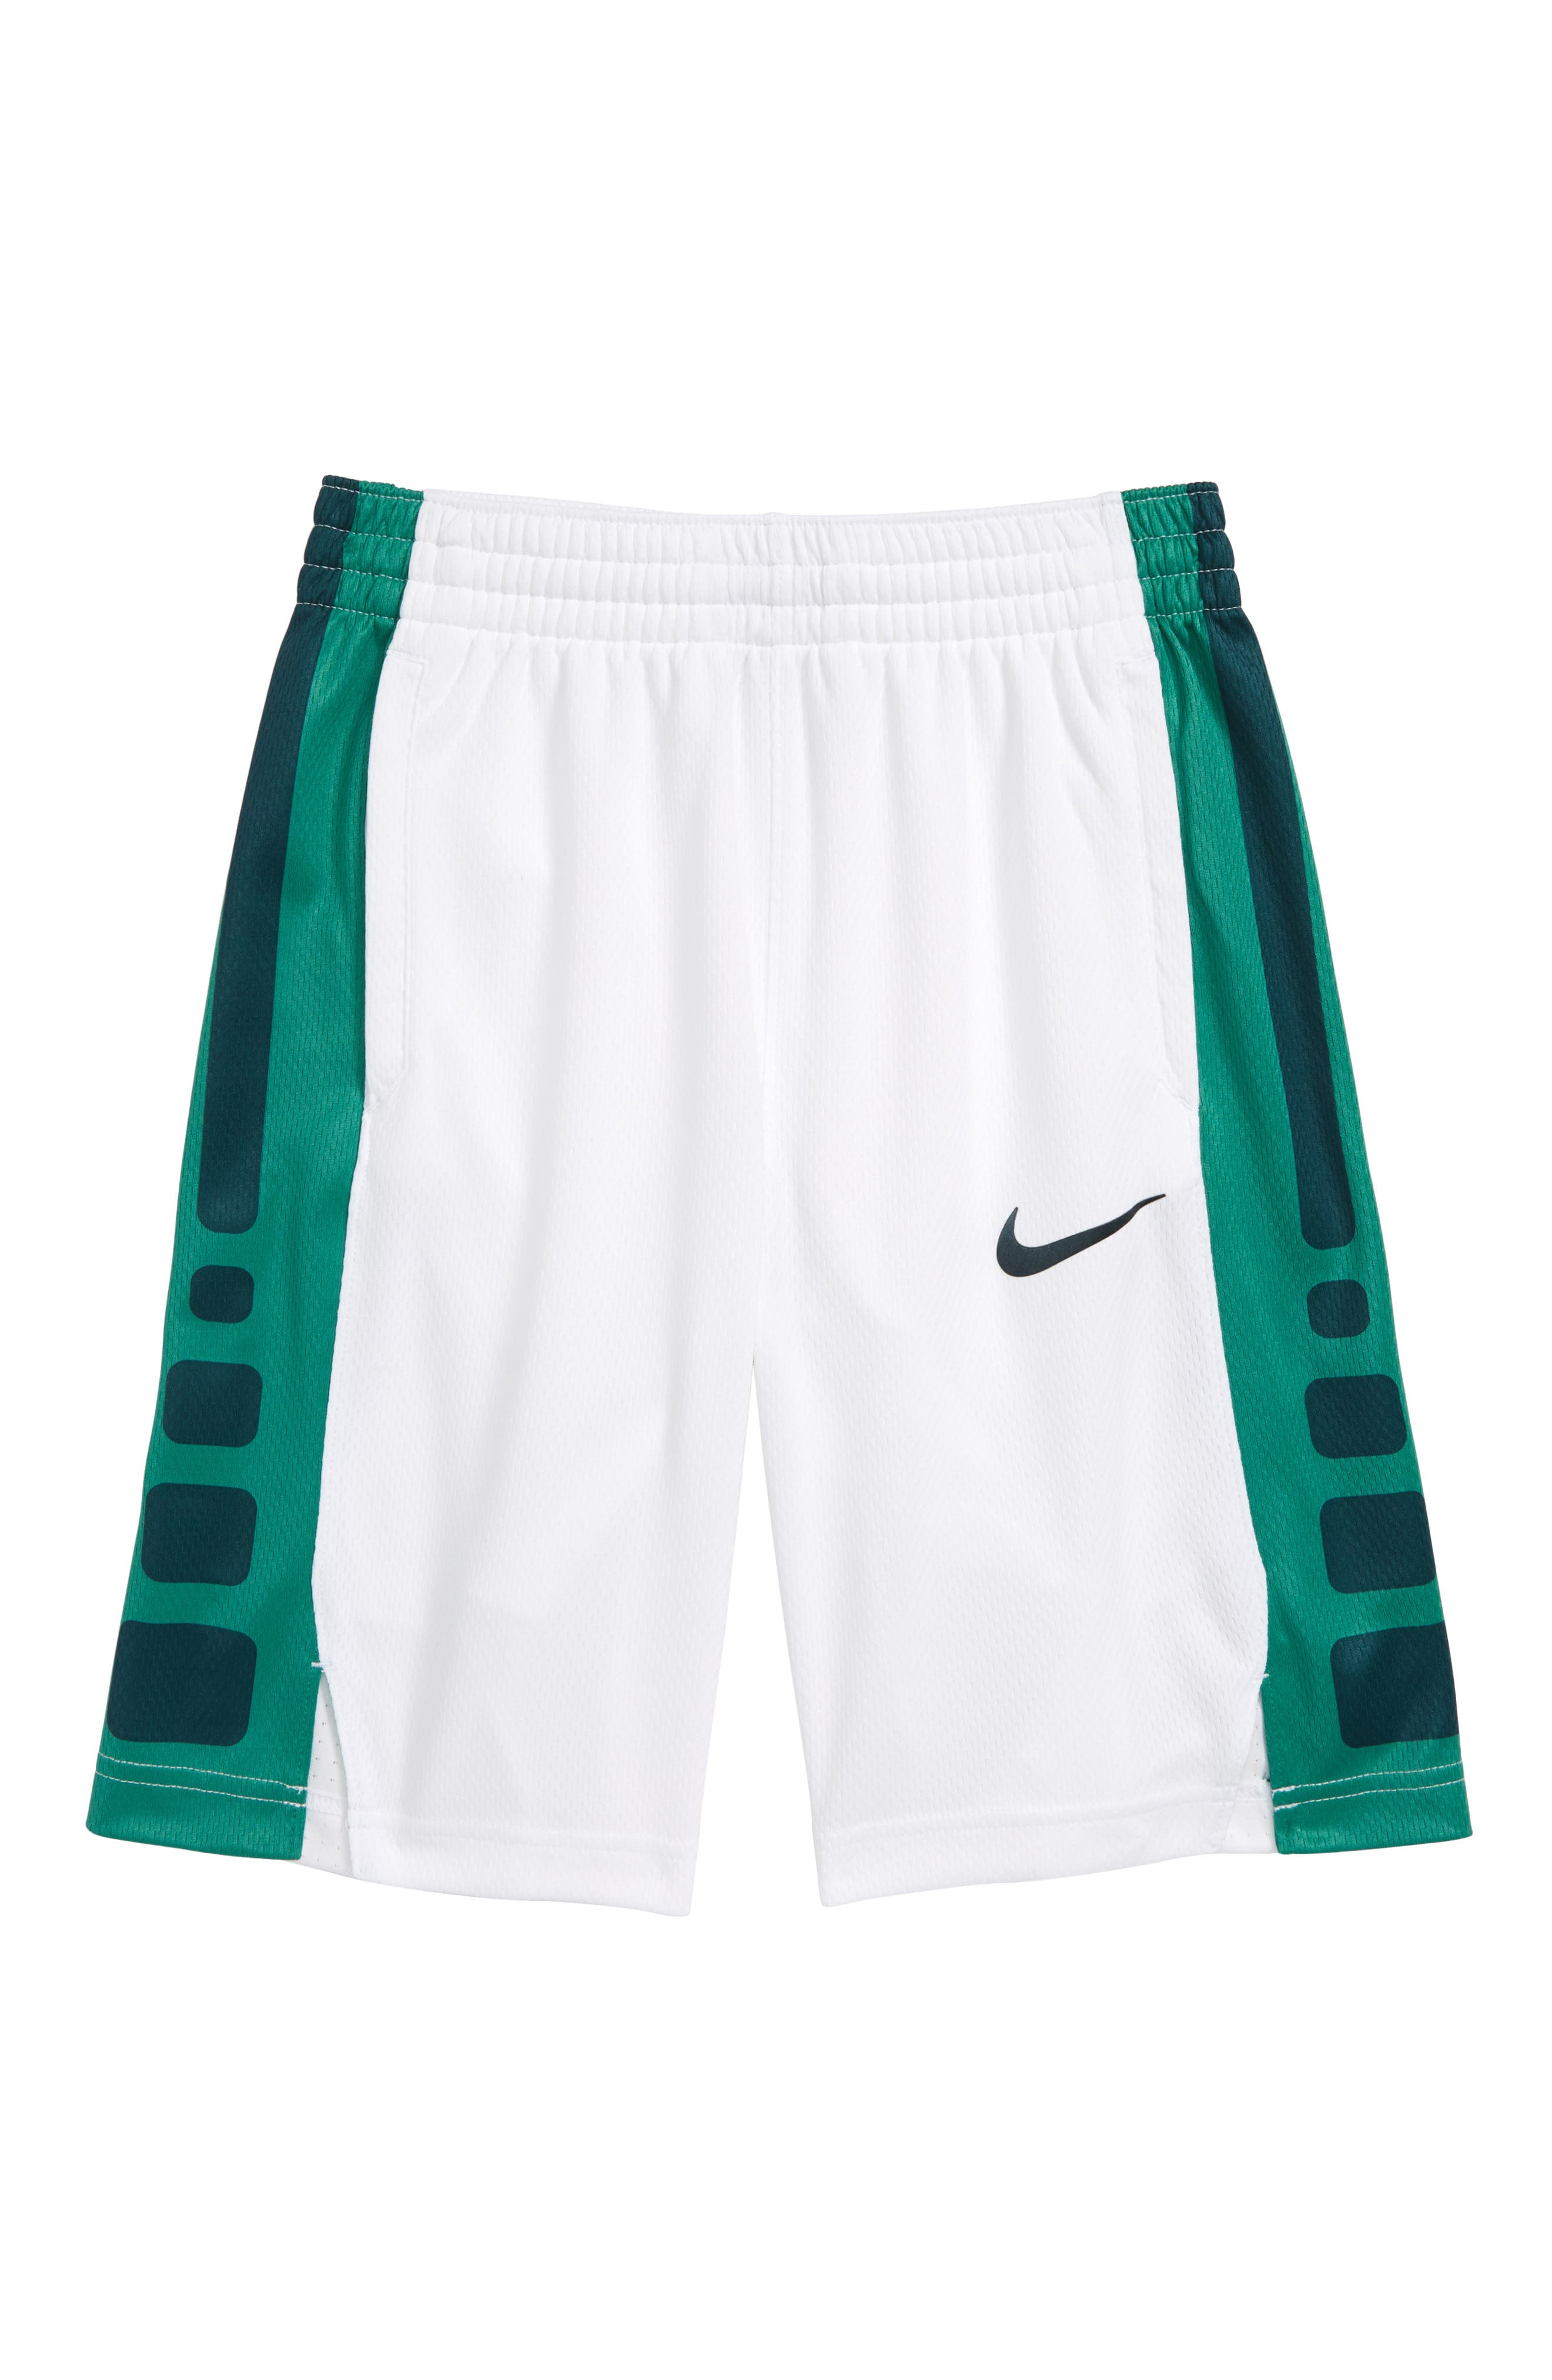 Dry Elite Basketball Shorts,                             Main thumbnail 8, color,